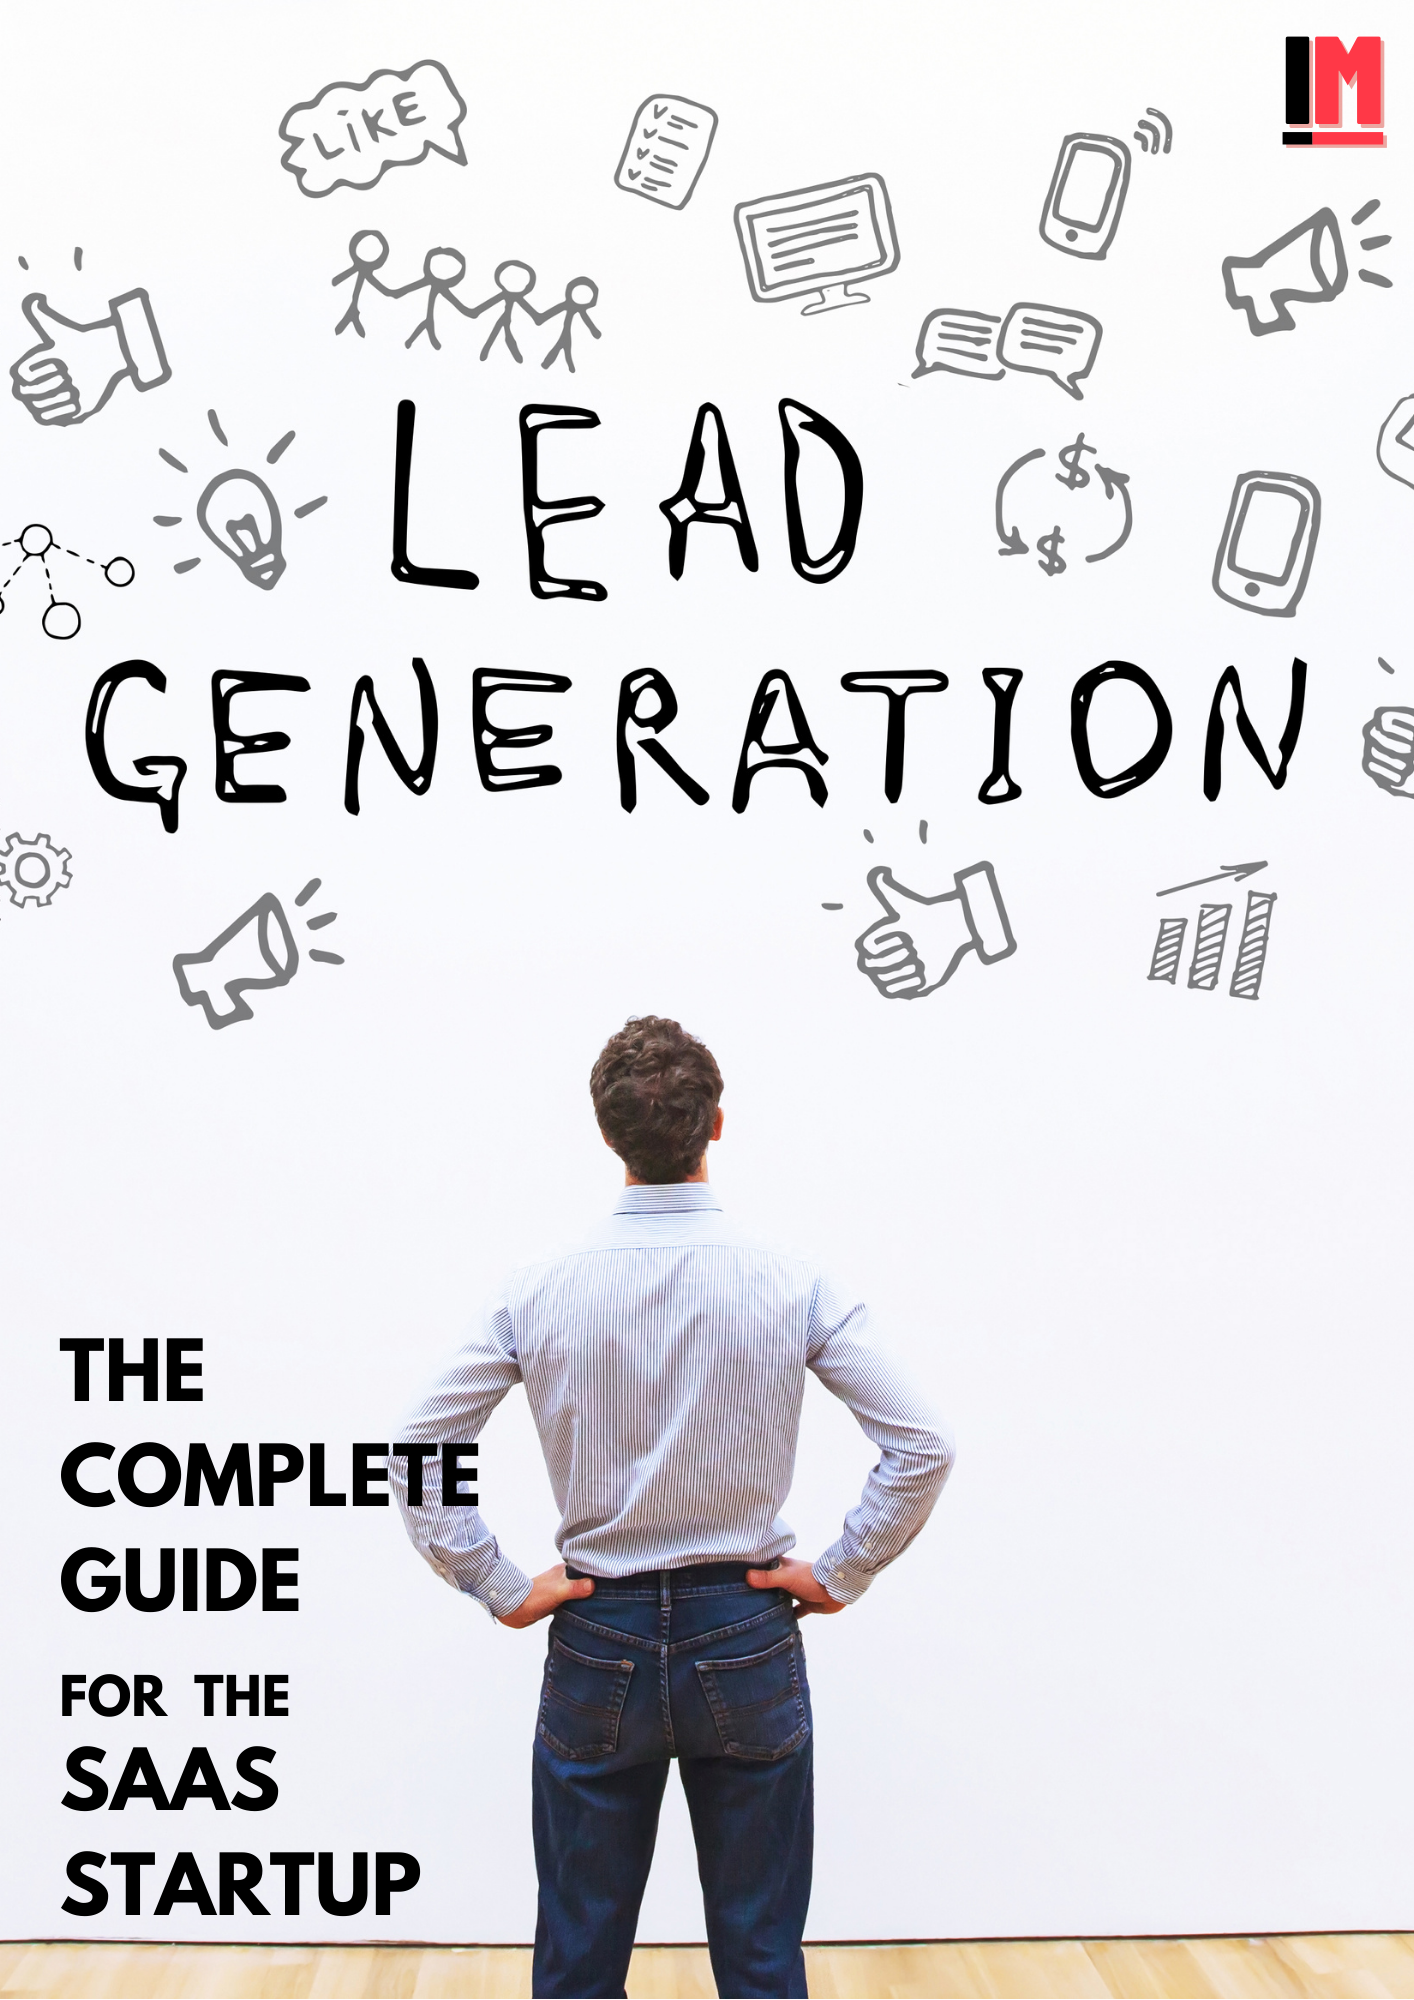 The Complete Guide to Lead Generation for the SaaS Startup